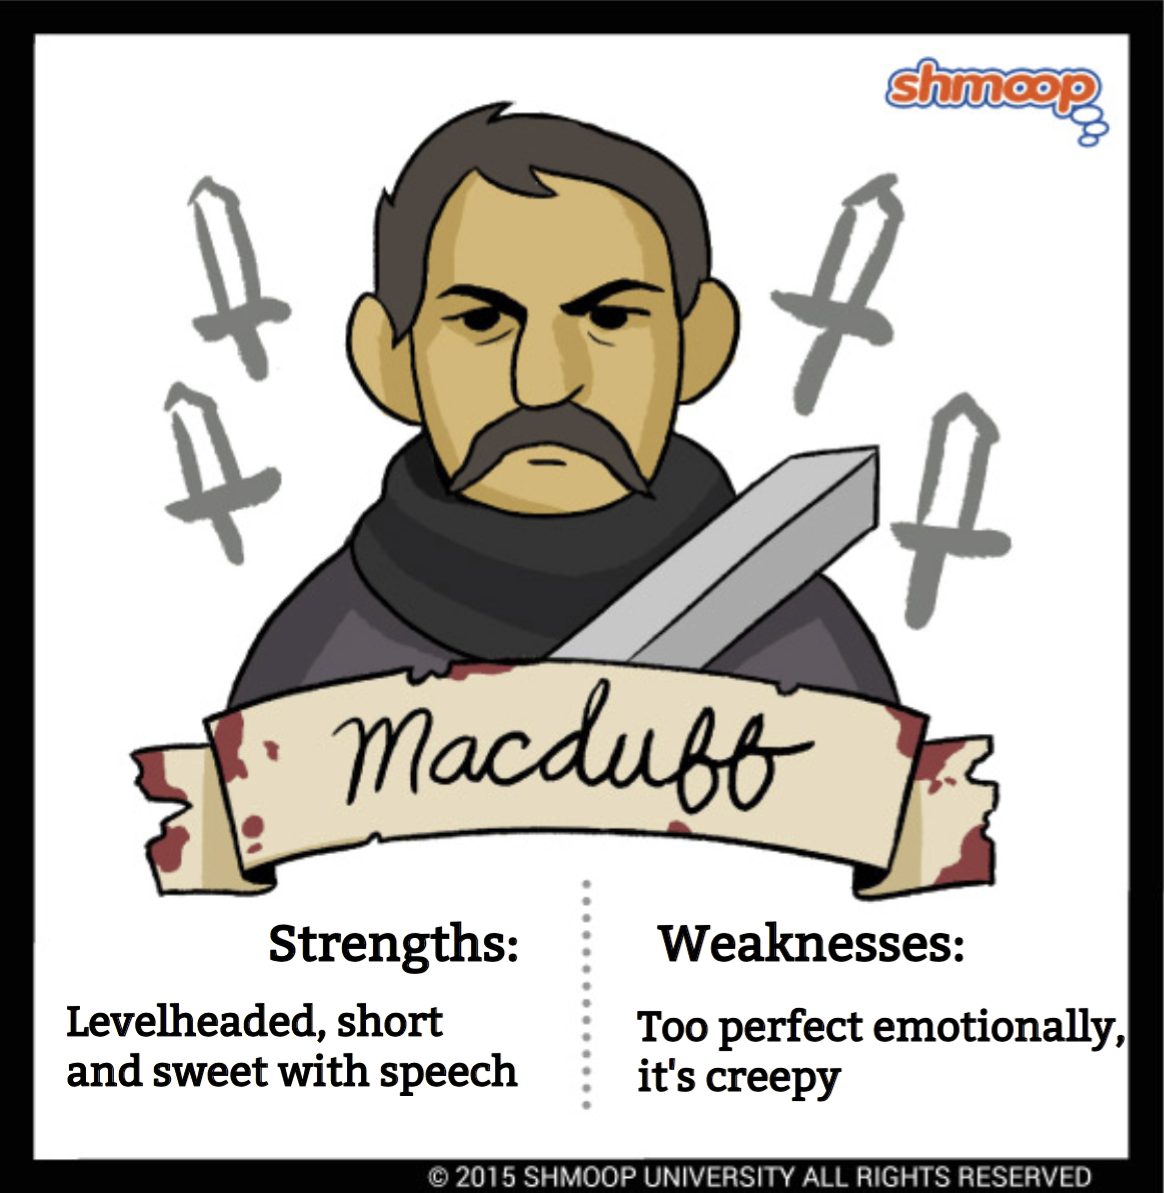 macduff in macbeth character analysis